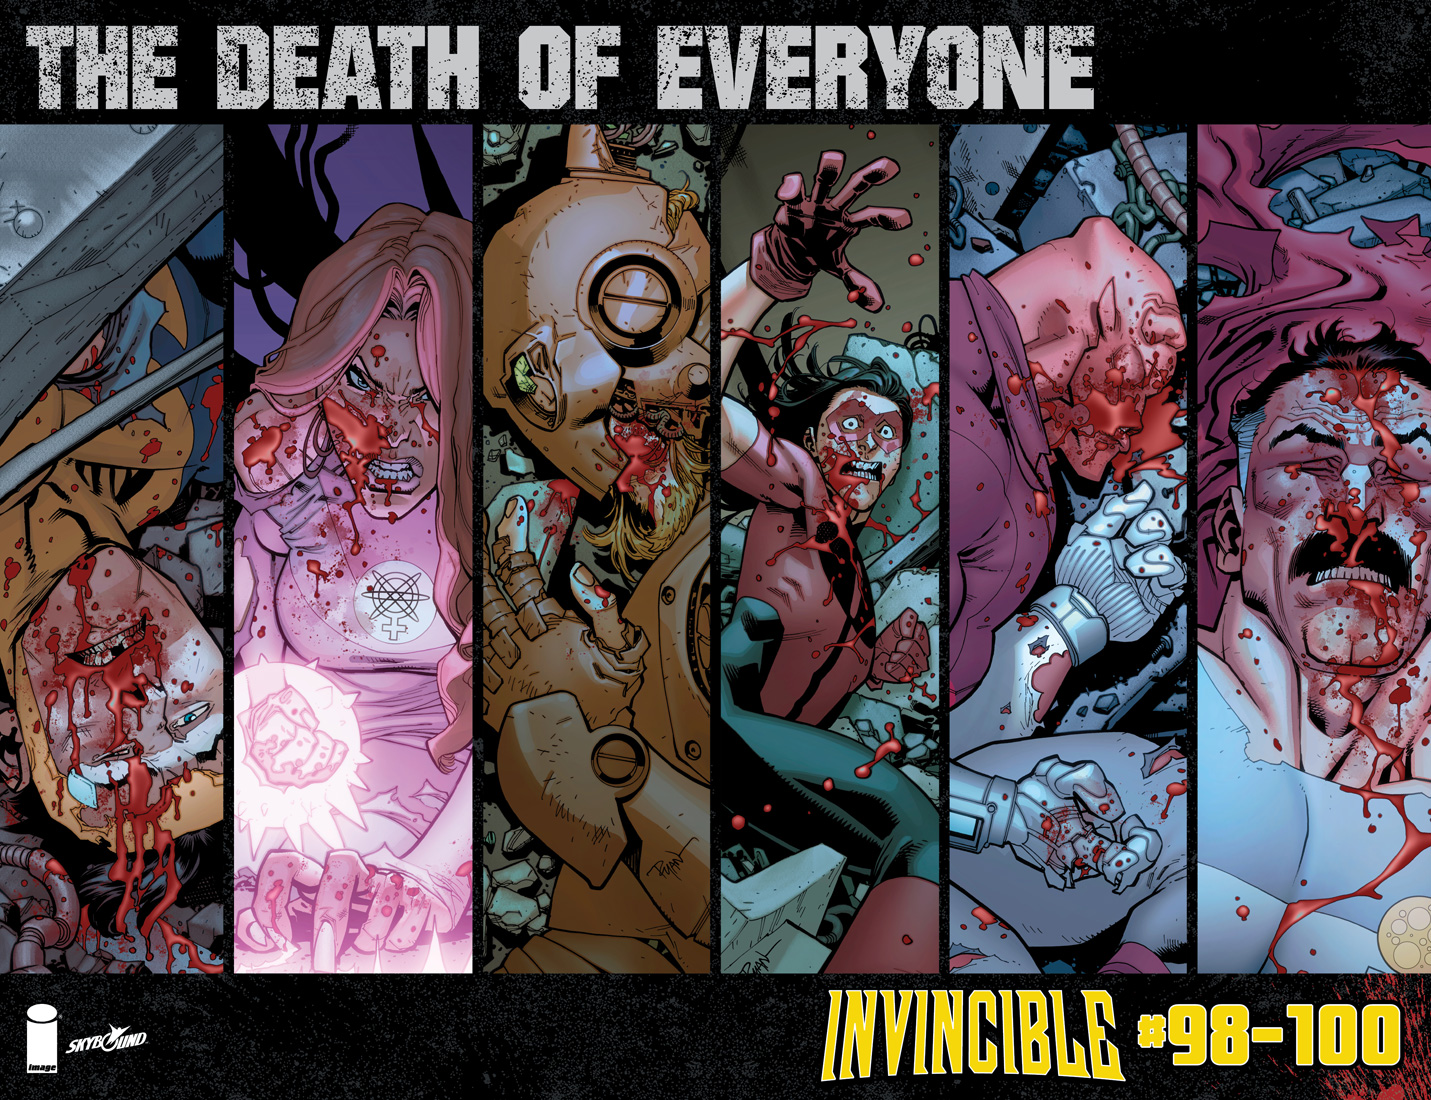 The death of everyone by RyanOttley